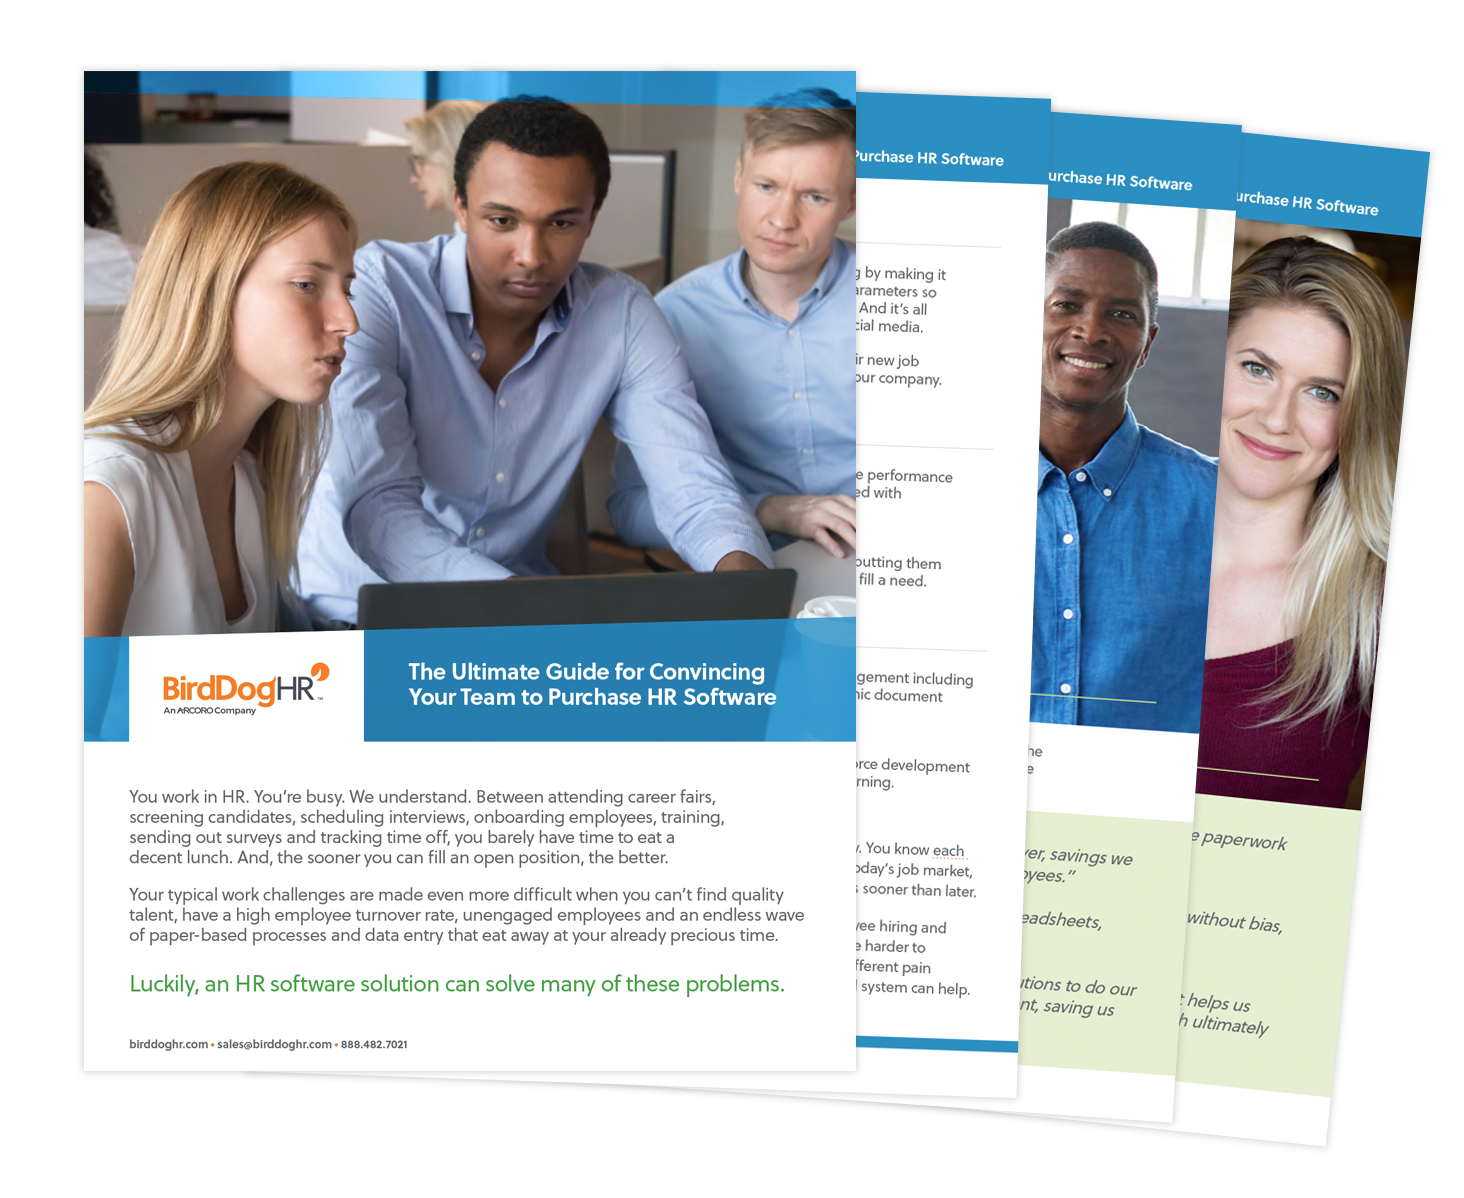 The Ultimate Guide for Convincing Your Team to Purchase HR Software whitepaper